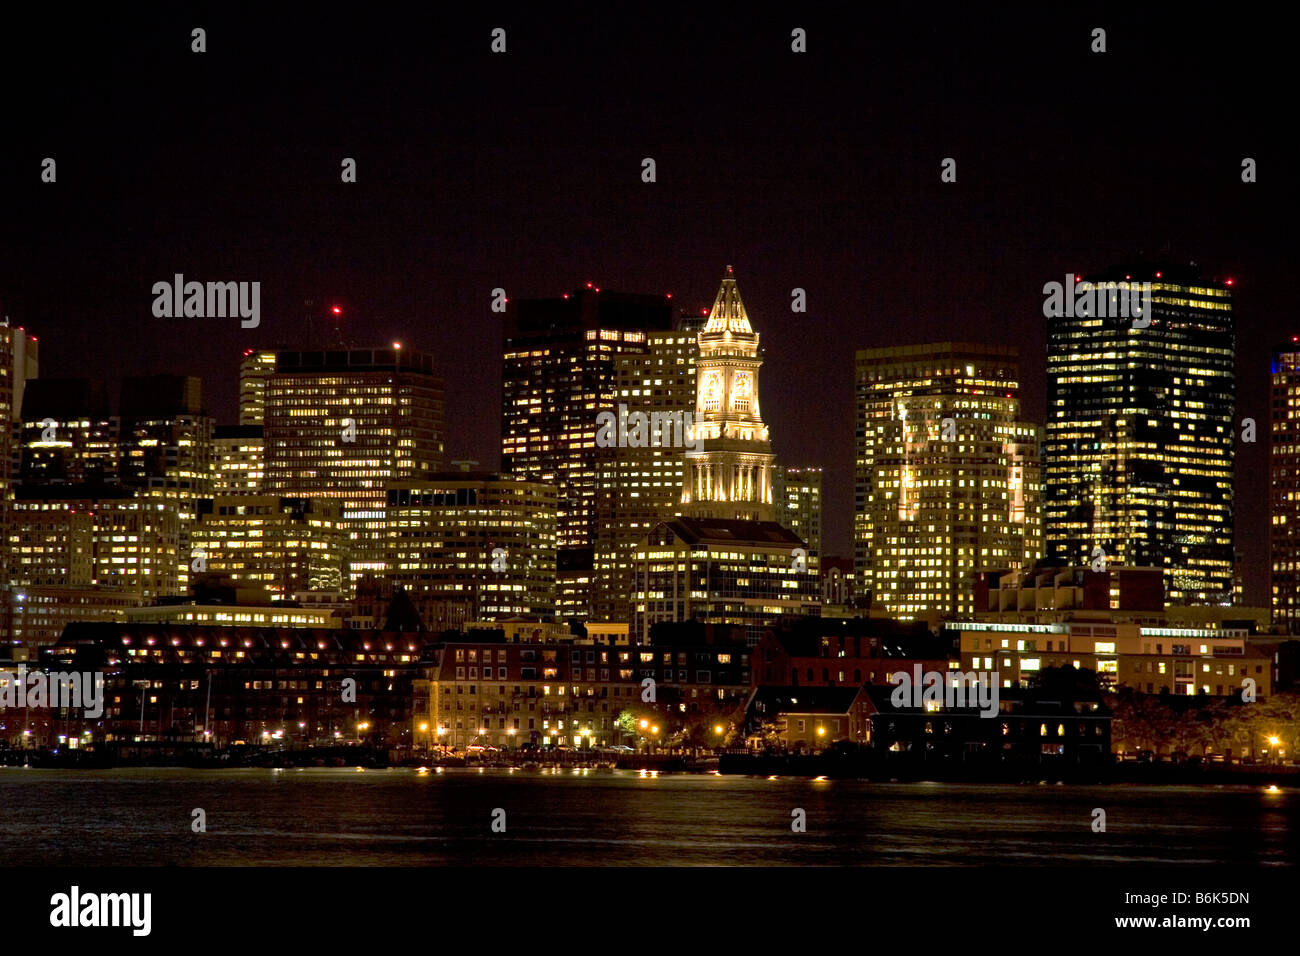 Skyline at night Boston Massachusetts USA Photo Stock